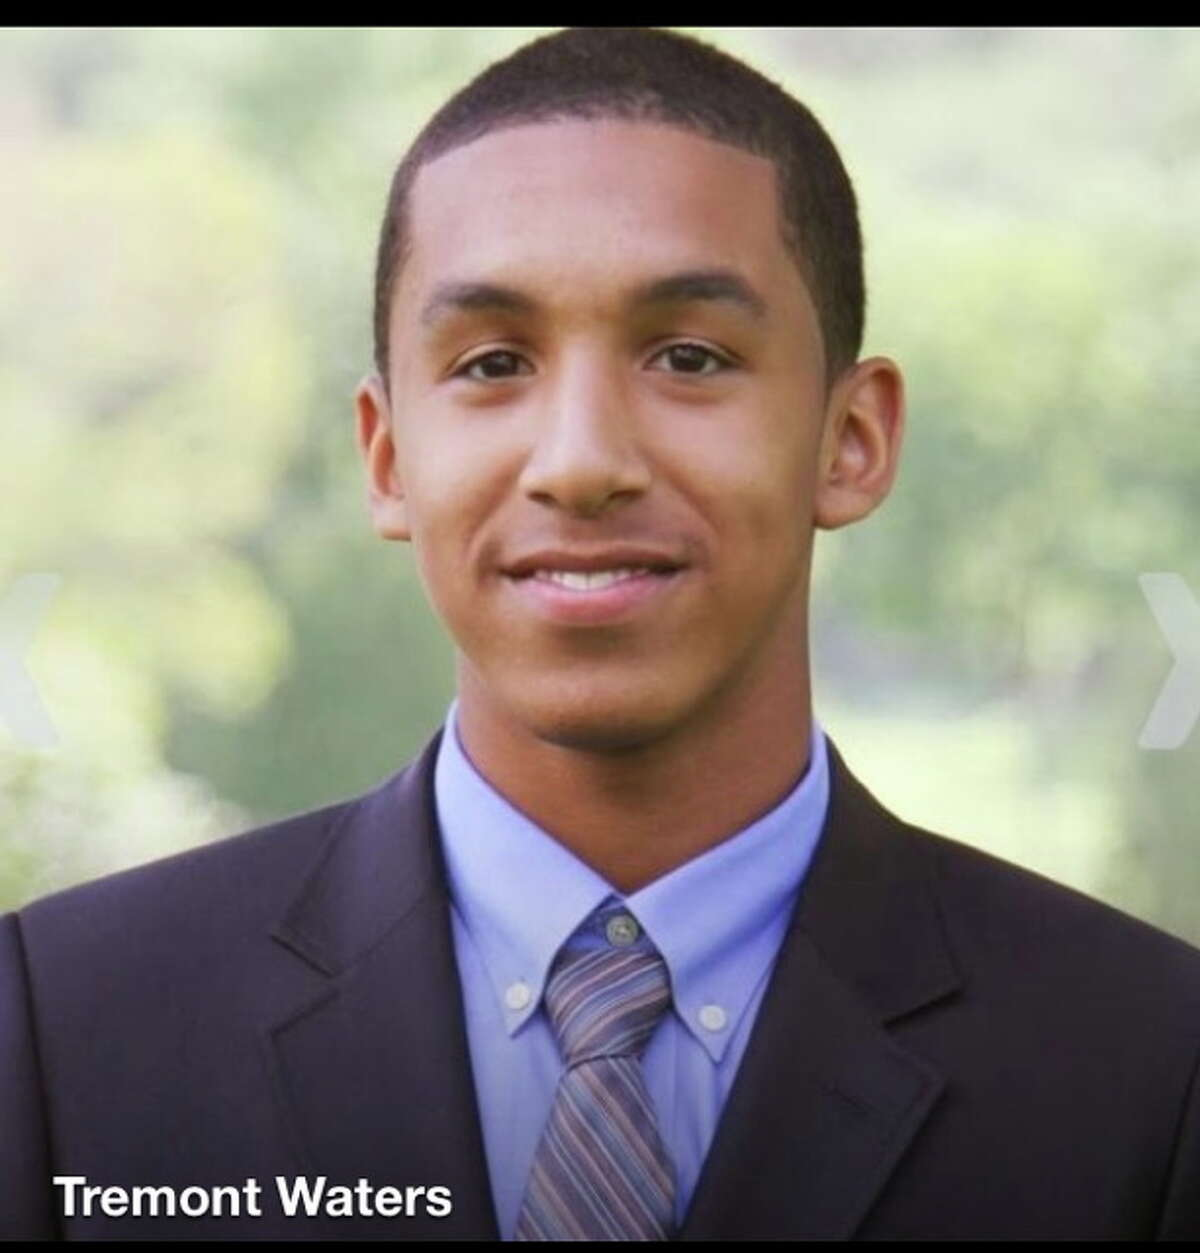 New Haven native Tremont Waters earned honorable mention all-league honors as a freshman at South Kent School.